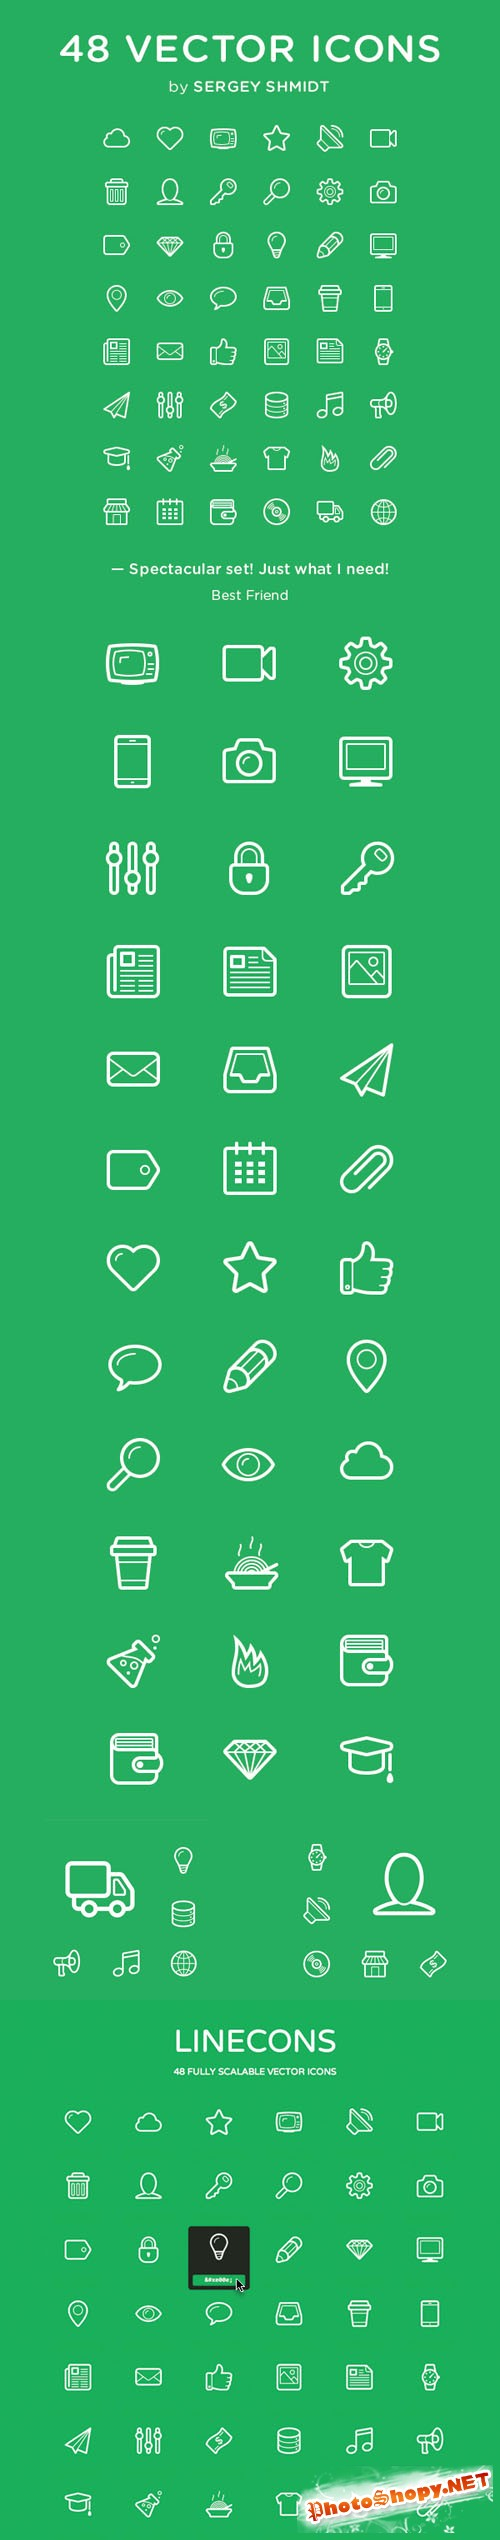 48 Linecons Vector Icons